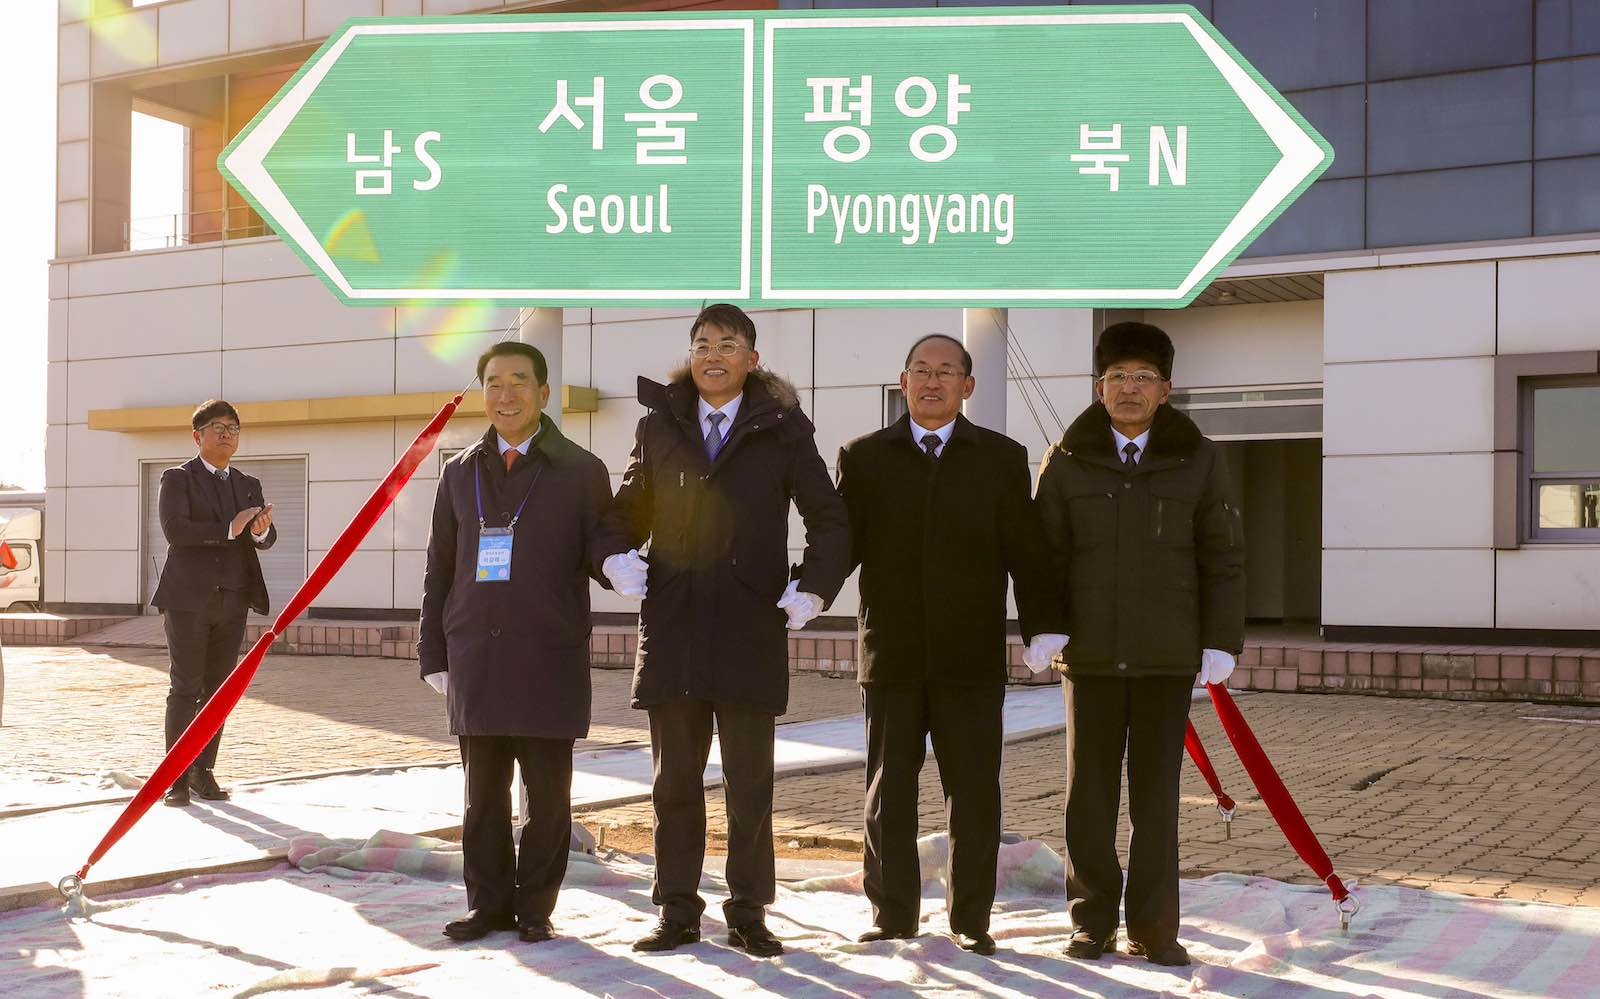 Happier times: South and North Korean government officials in 2018 at Kaesong Industrial Complex, North Korea (Seung-il Ryu via Getty Images)